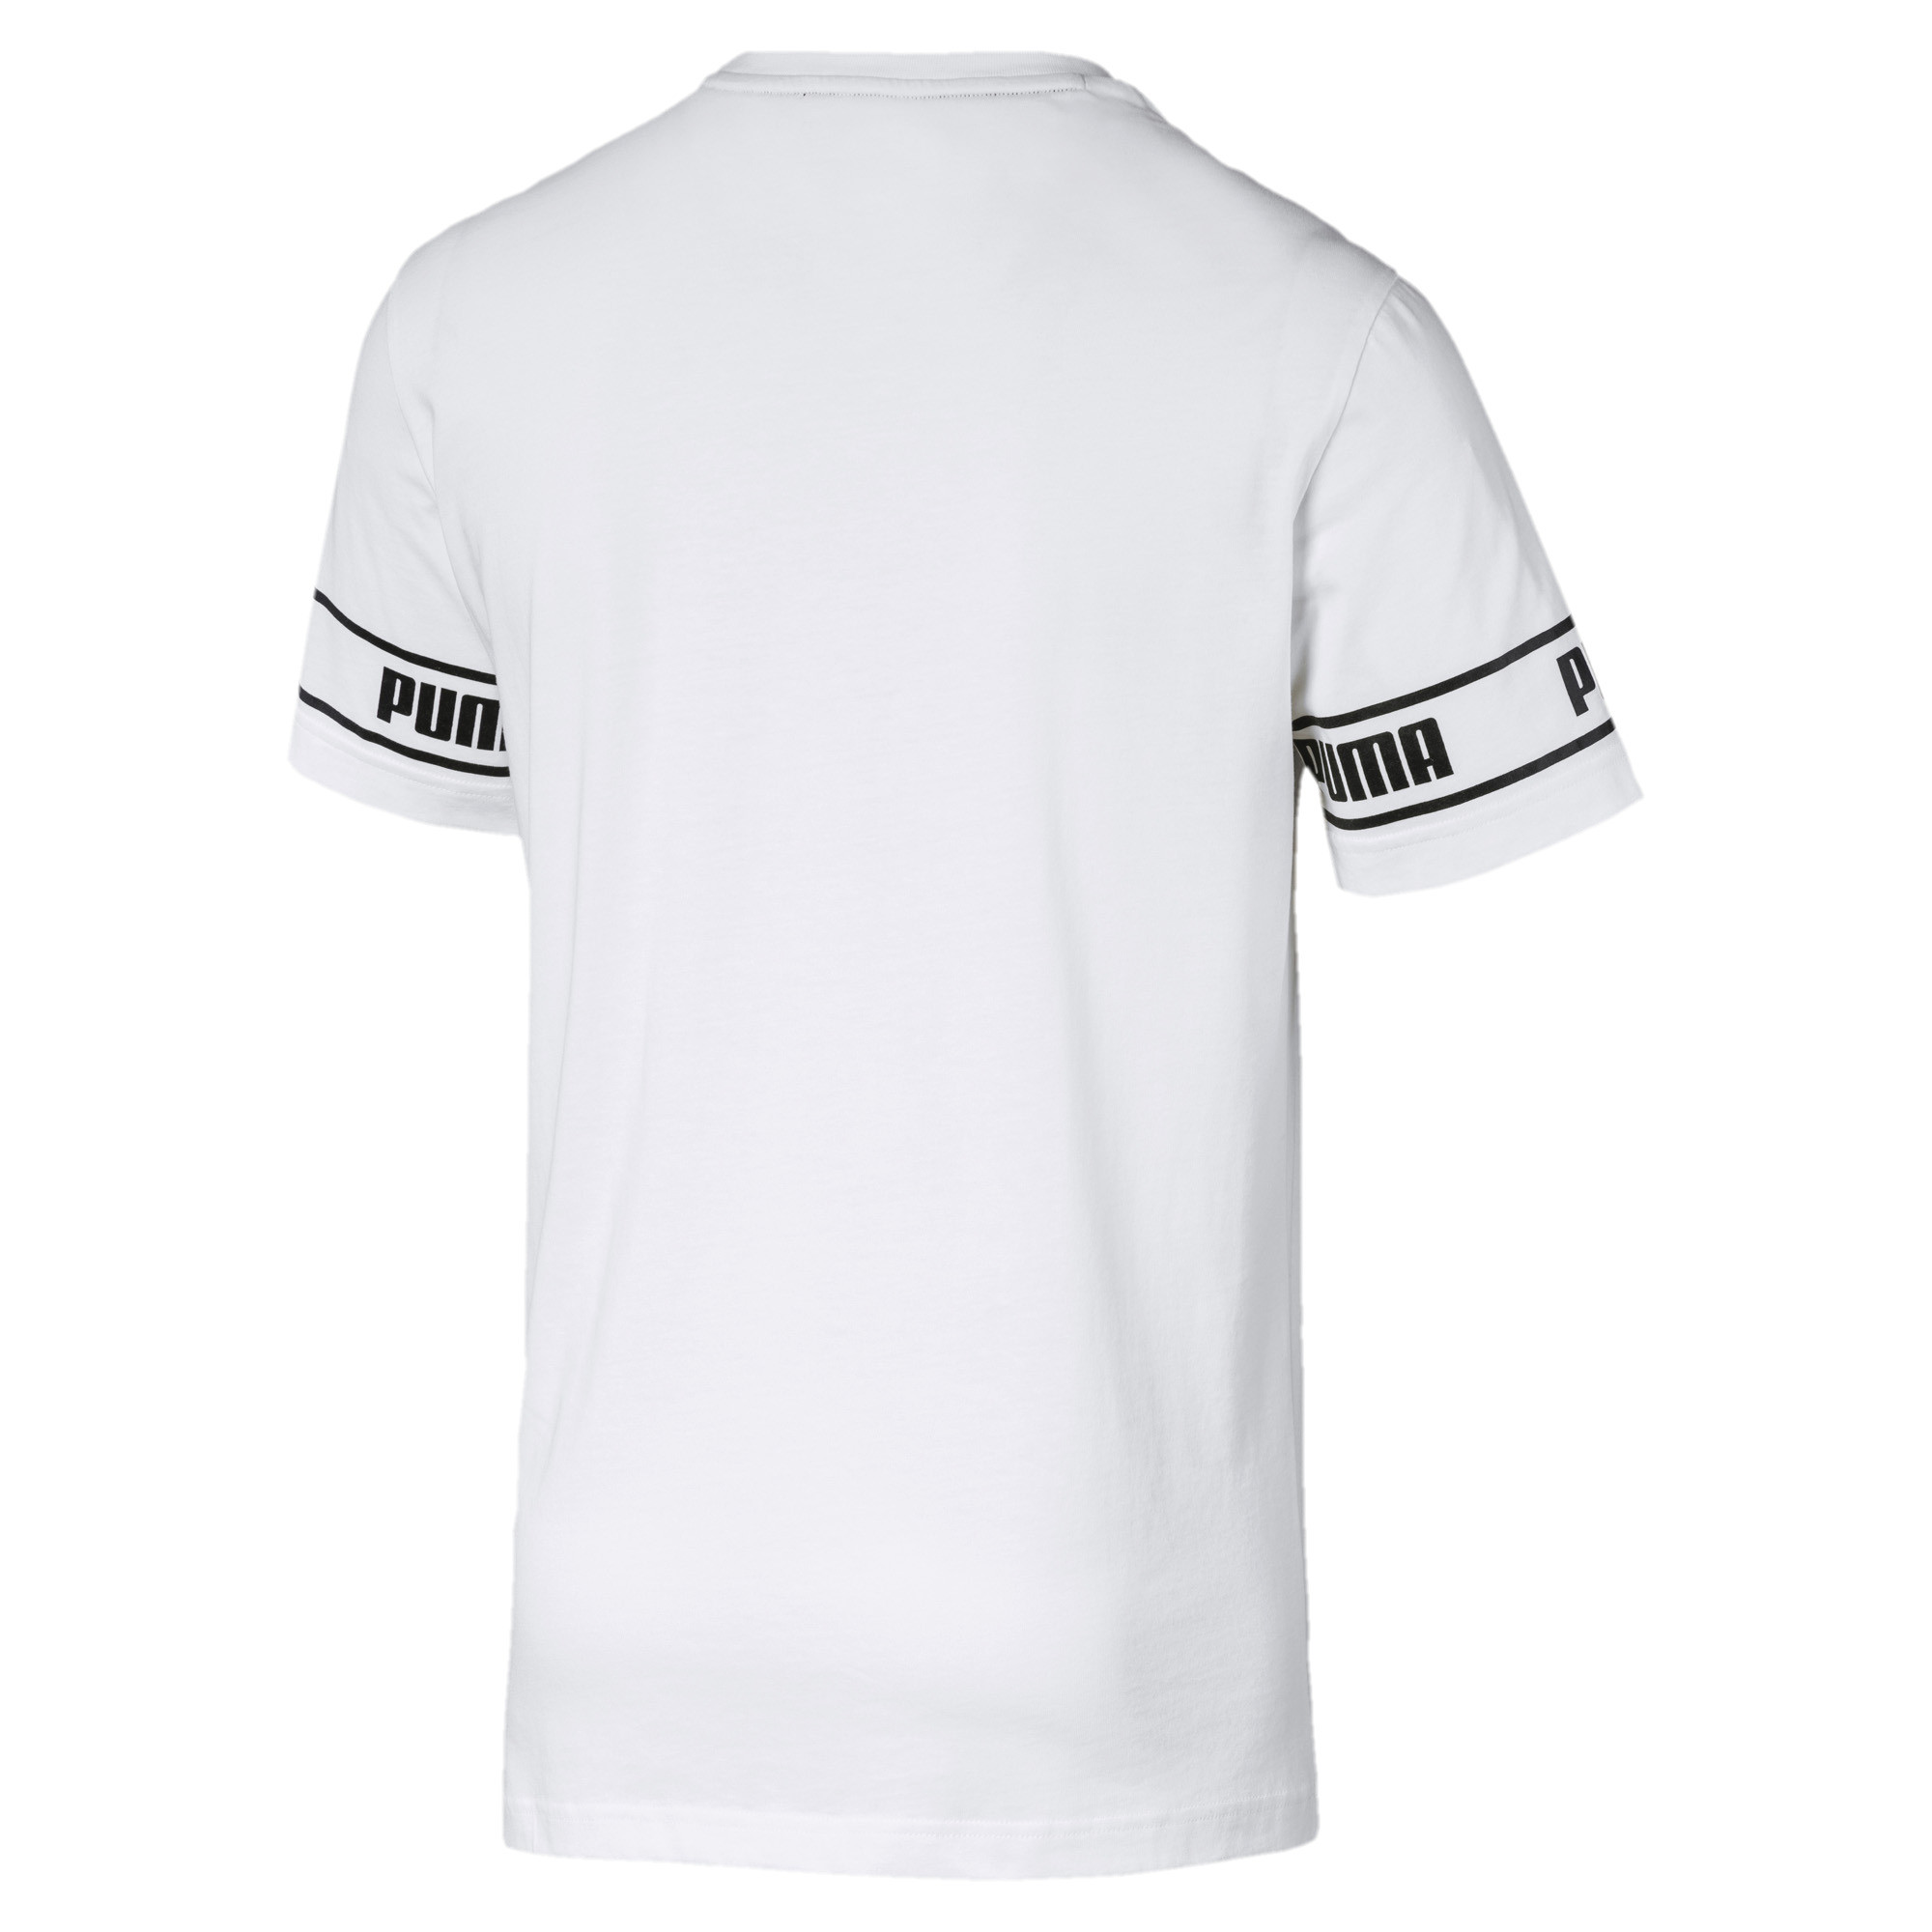 PUMA-Amplified-Men-039-s-Big-Logo-Tee-Men-Tee-Basics thumbnail 3